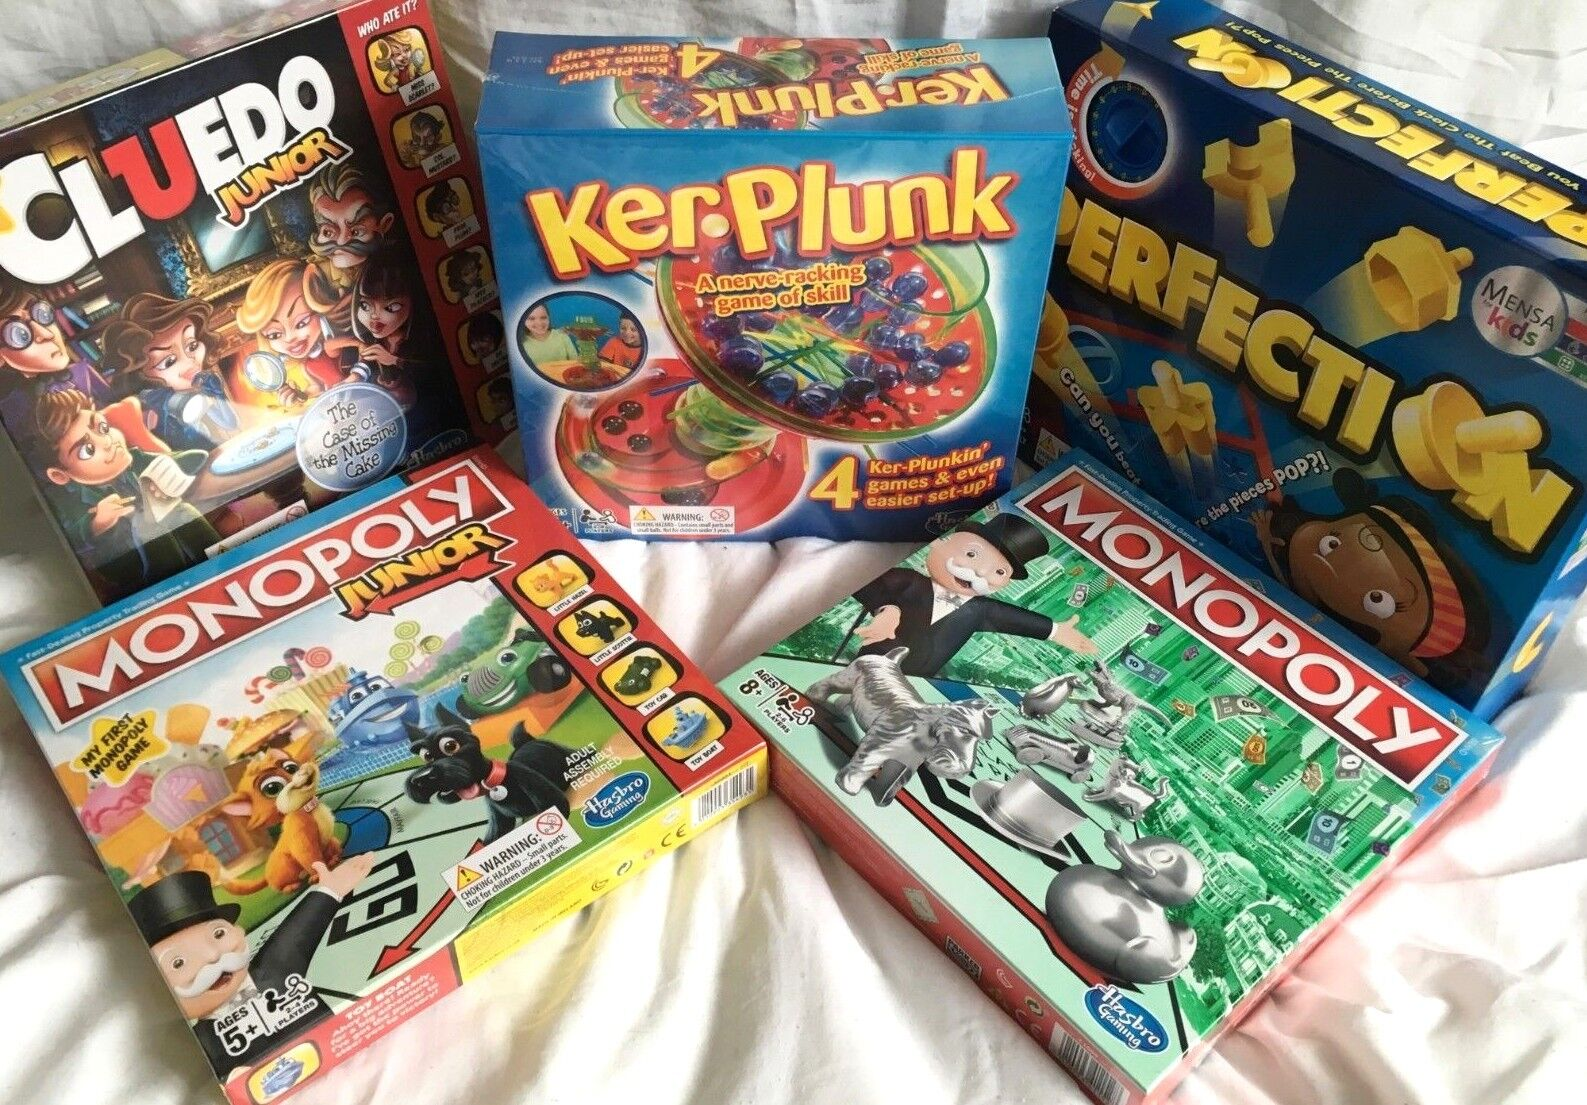 NEW LATEST BOARD GAMES MONOPOLY + JNR KER PLUNK PERFECTION CLUDO CHOICE OF 5